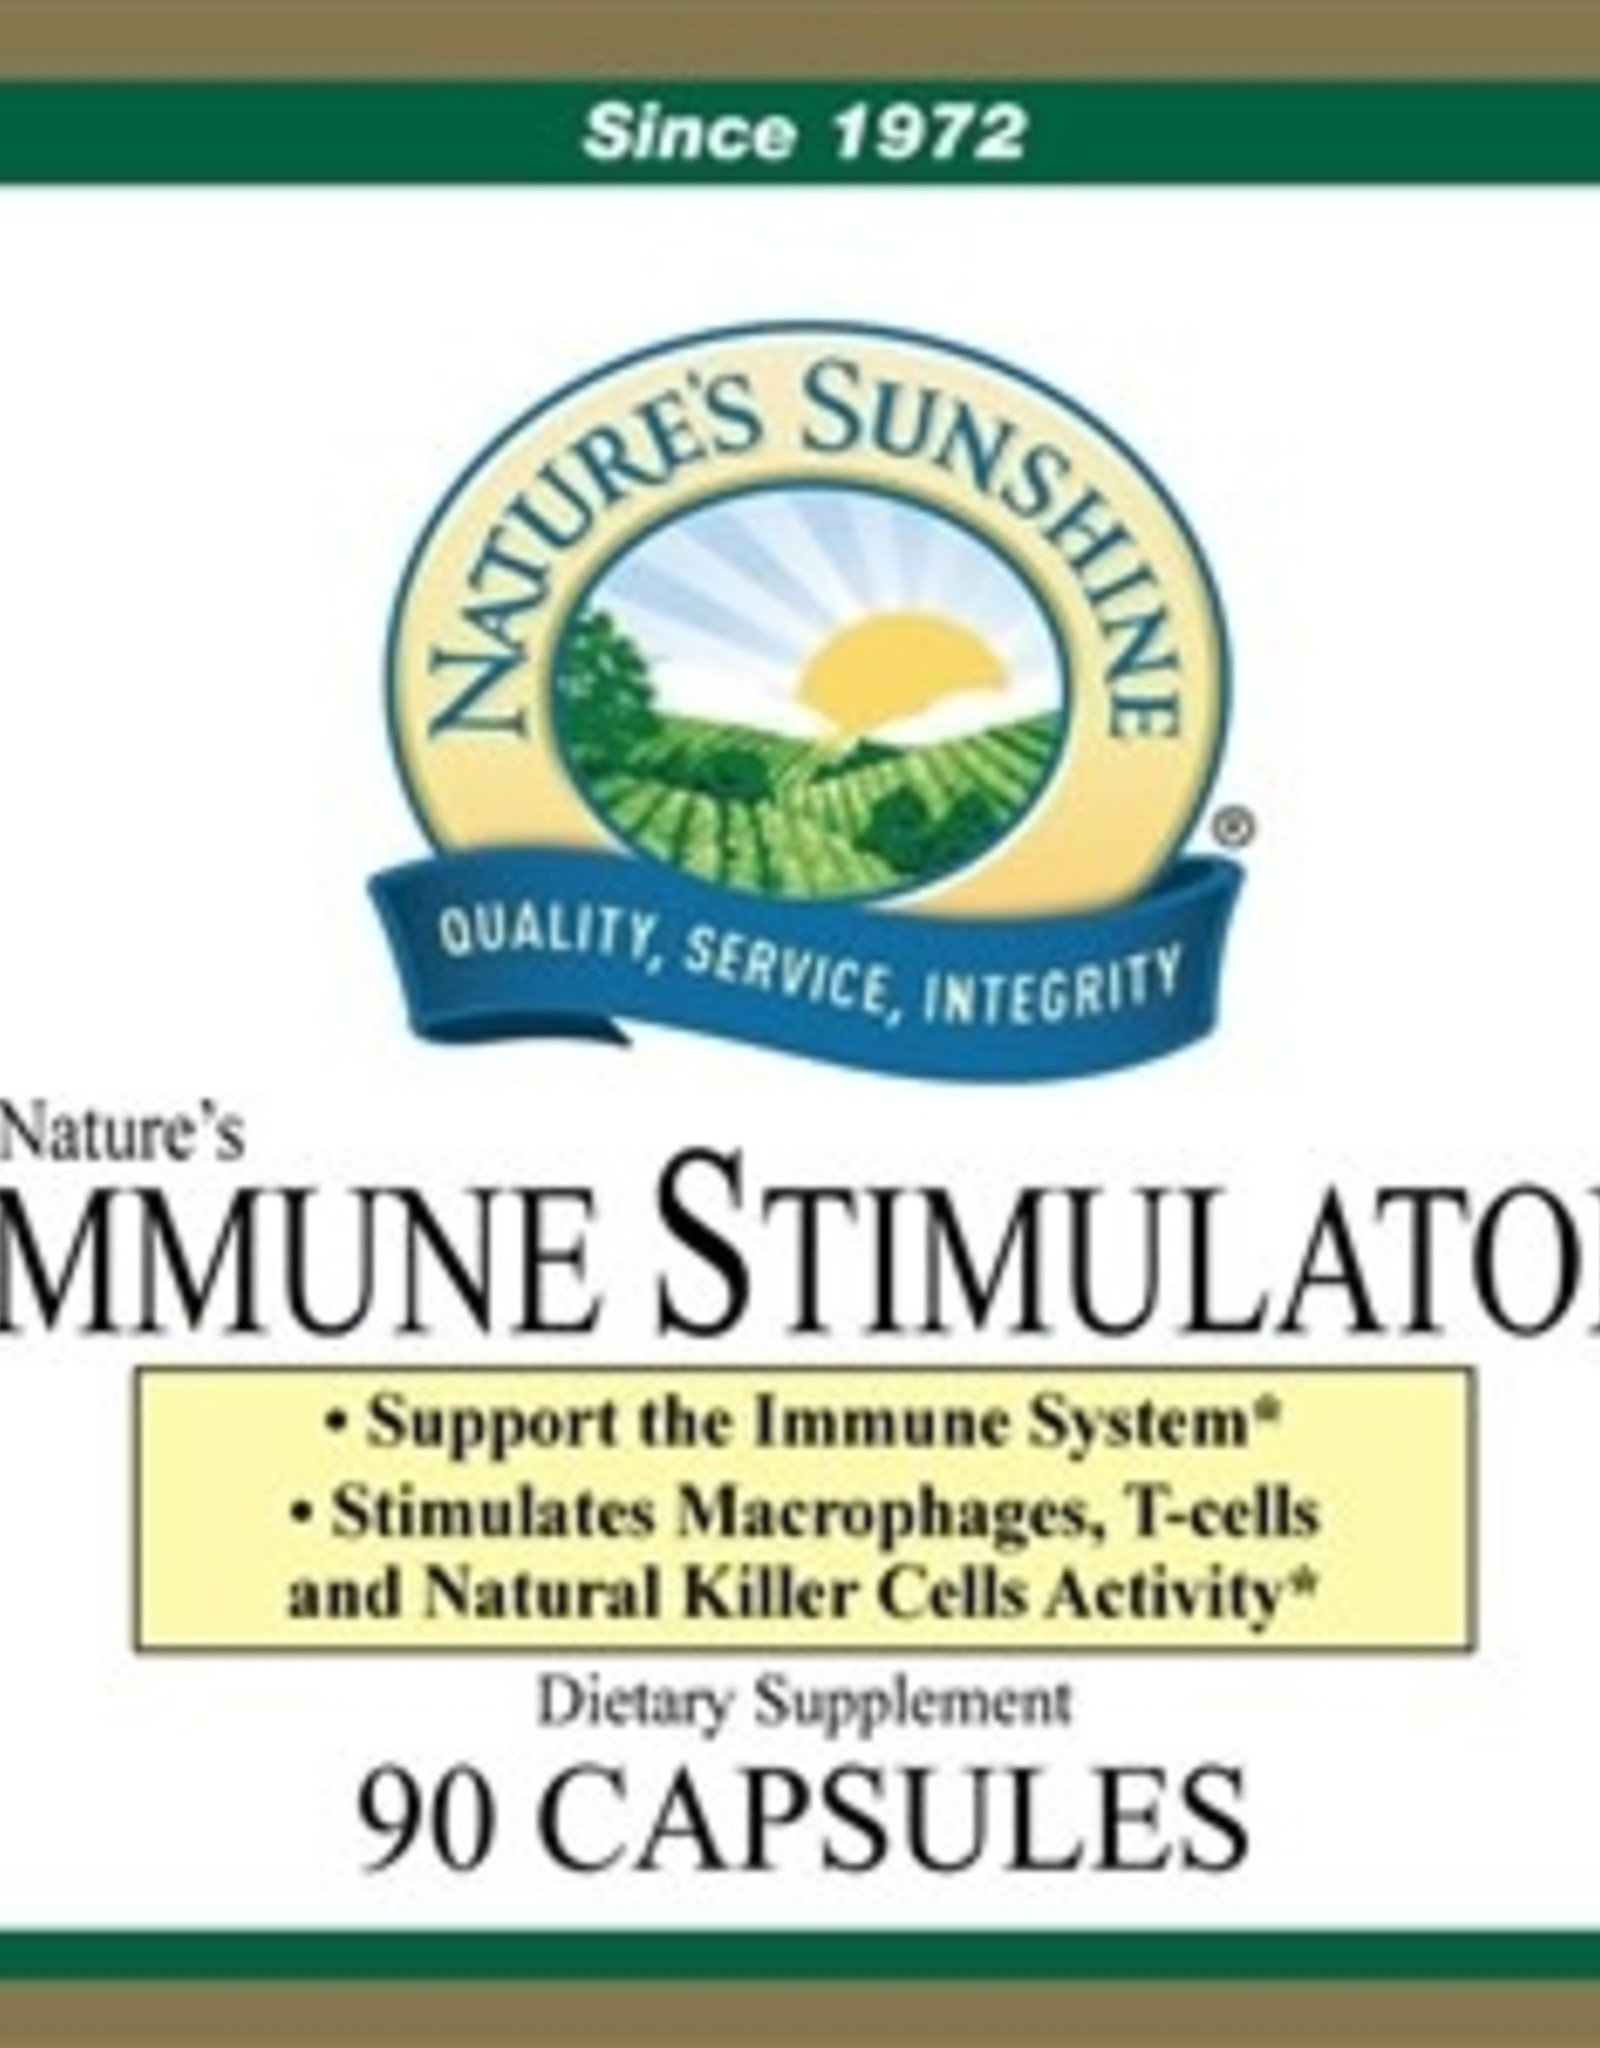 Nature's Sunshine Immune Stimulator (90 caps)